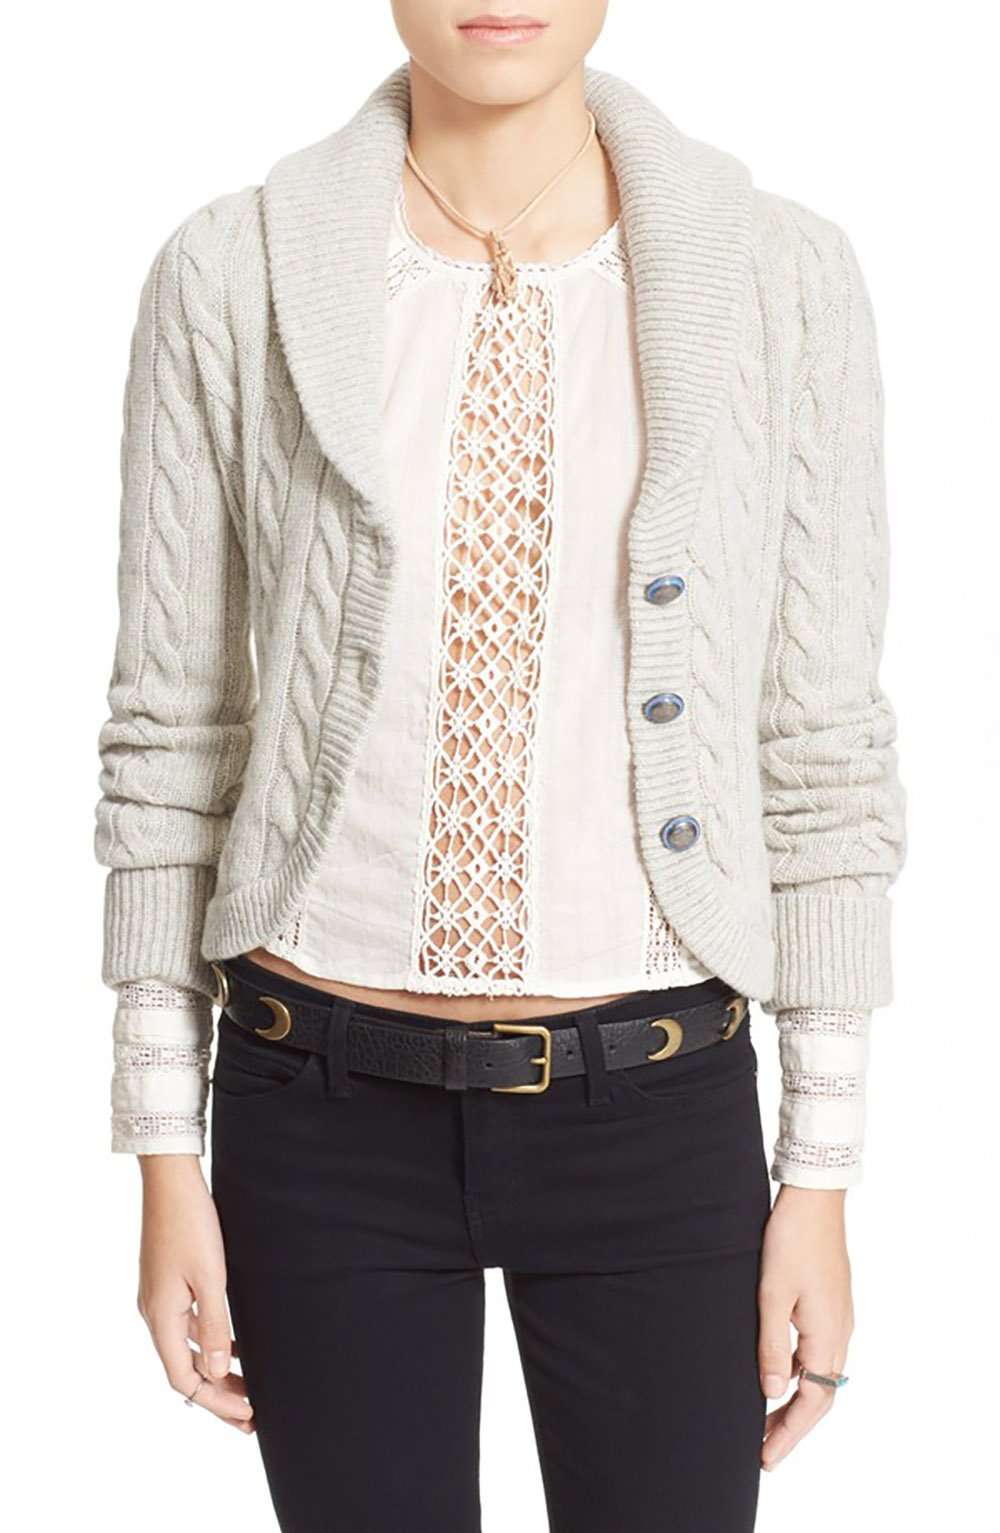 Free People Women's 'Viceroy' Shawl Collar Crop Cardigan (Small, White Ivory)